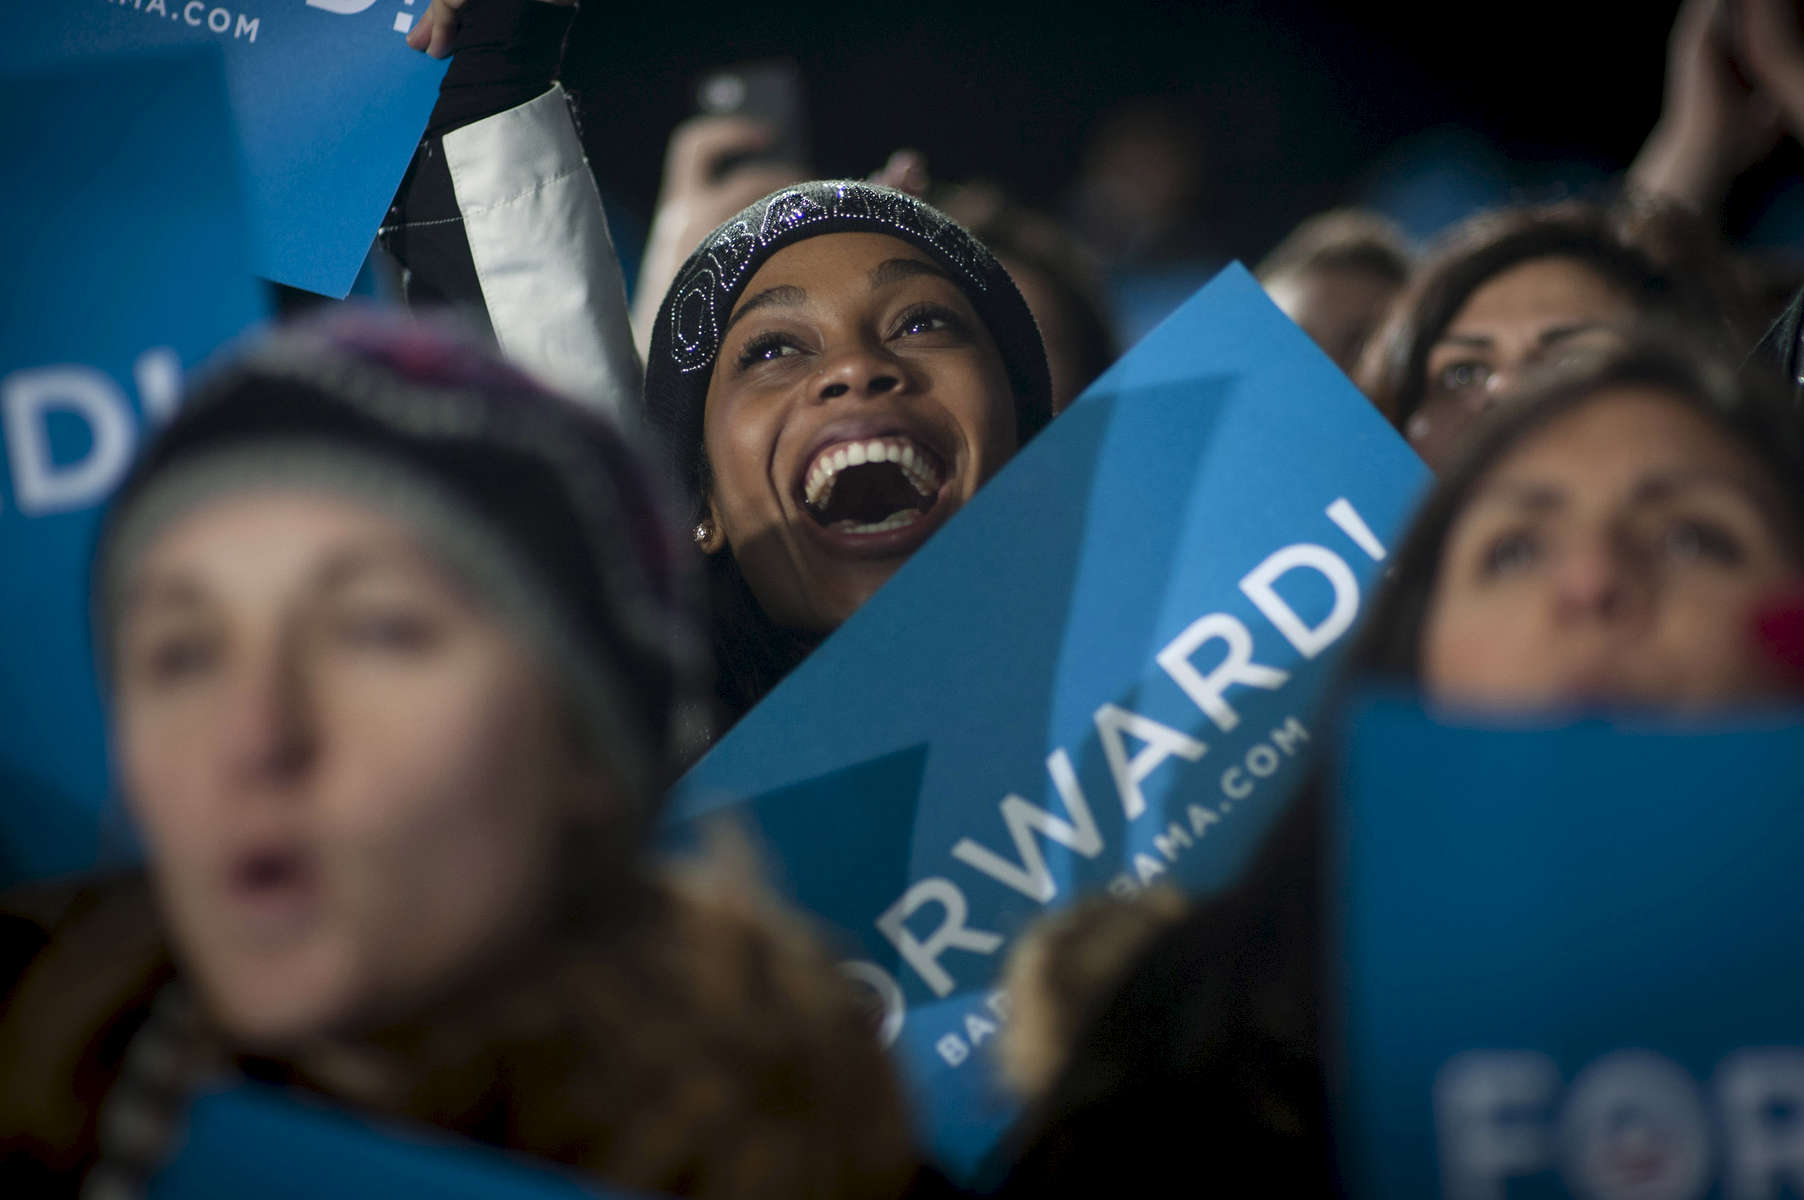 November 3, 2012 - Bristow, VA:  Supporters cheer as President Barack Obama speaks at a rally in Bristow, VA a few days before the 2012 election. (Scout Tufankjian for Obama for America/Polaris)